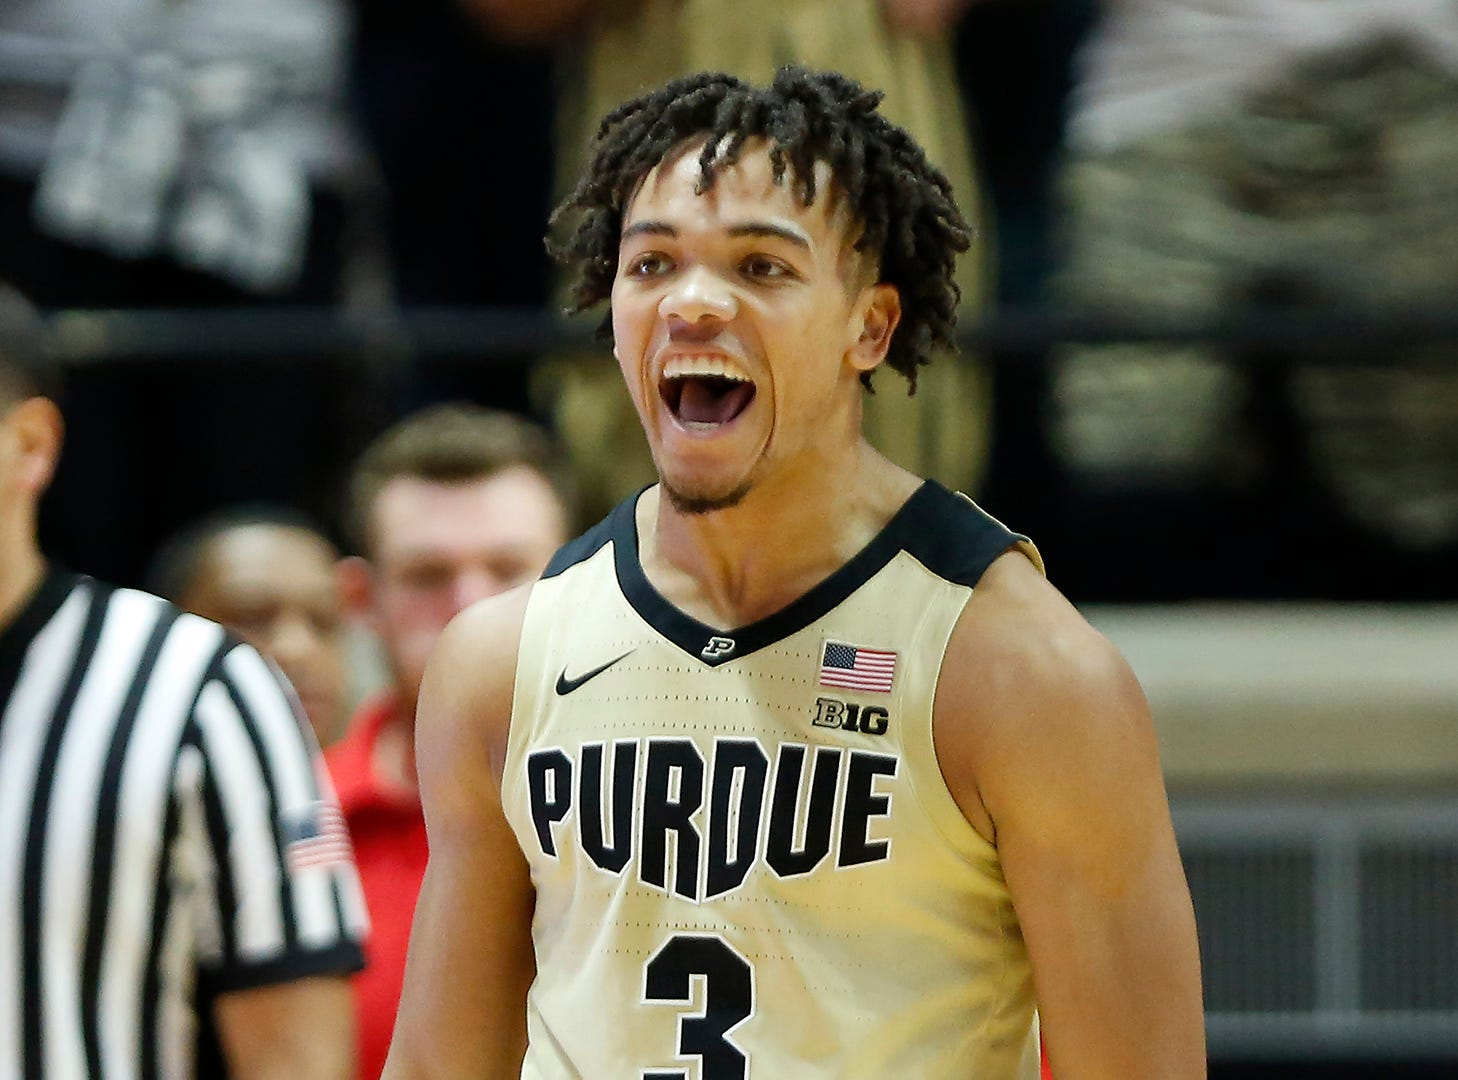 Carsen Edwards of Purdue reacts after teammate Grady Eifert knocked down a three-point shot to tie the game at 41-41 against Maryland with 14:32 remaining Thursday, December 6, 2018, at Mackey Arena. Purdue defeated Maryland 62-60.